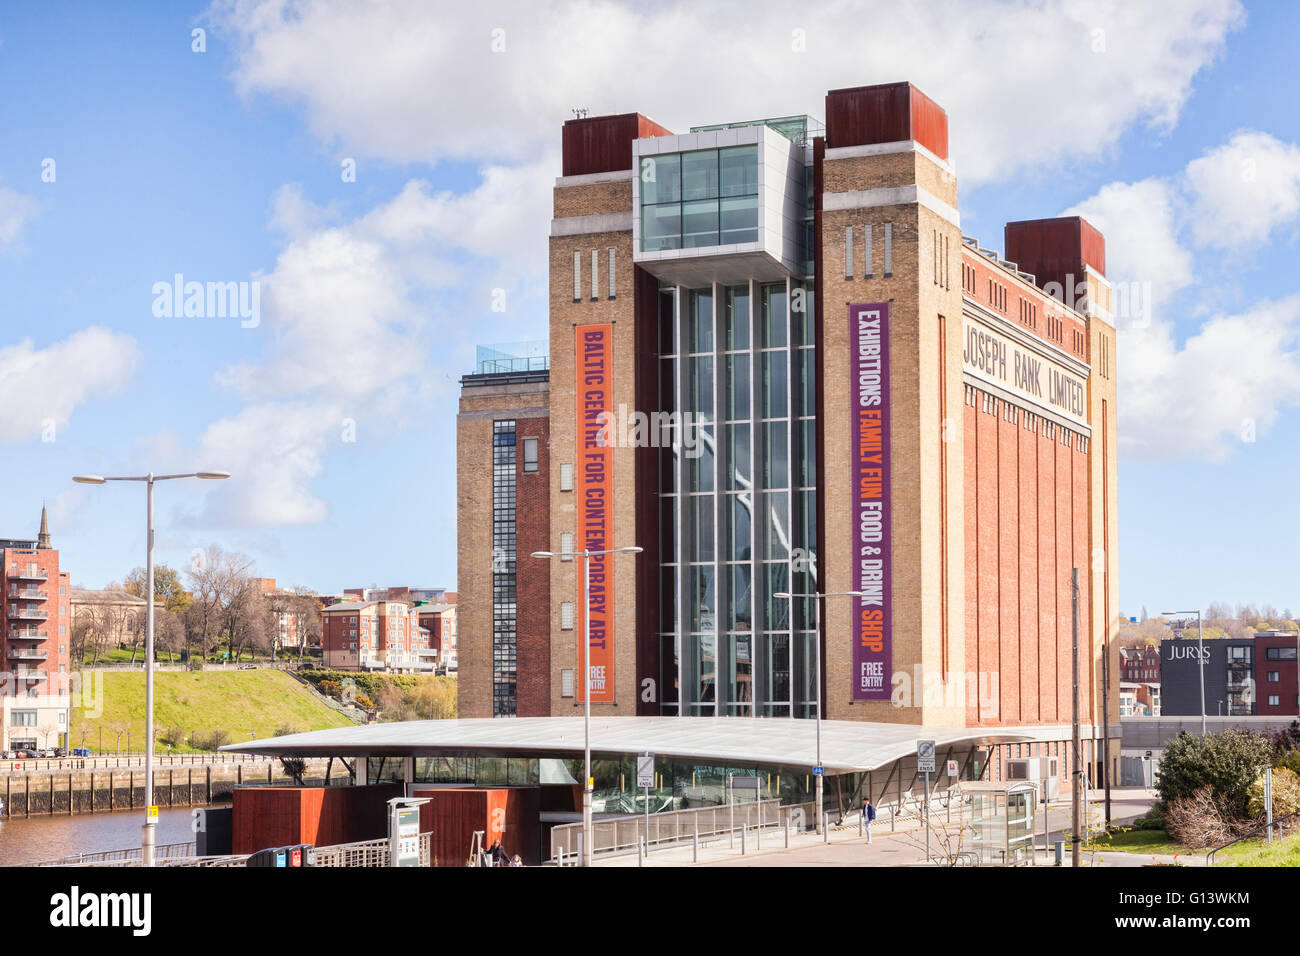 Baltic Centre for Contemporary Art, previously the Baltic Flour Mill,  Gateshead Quays, Tyne and Wear, England, - Stock Image